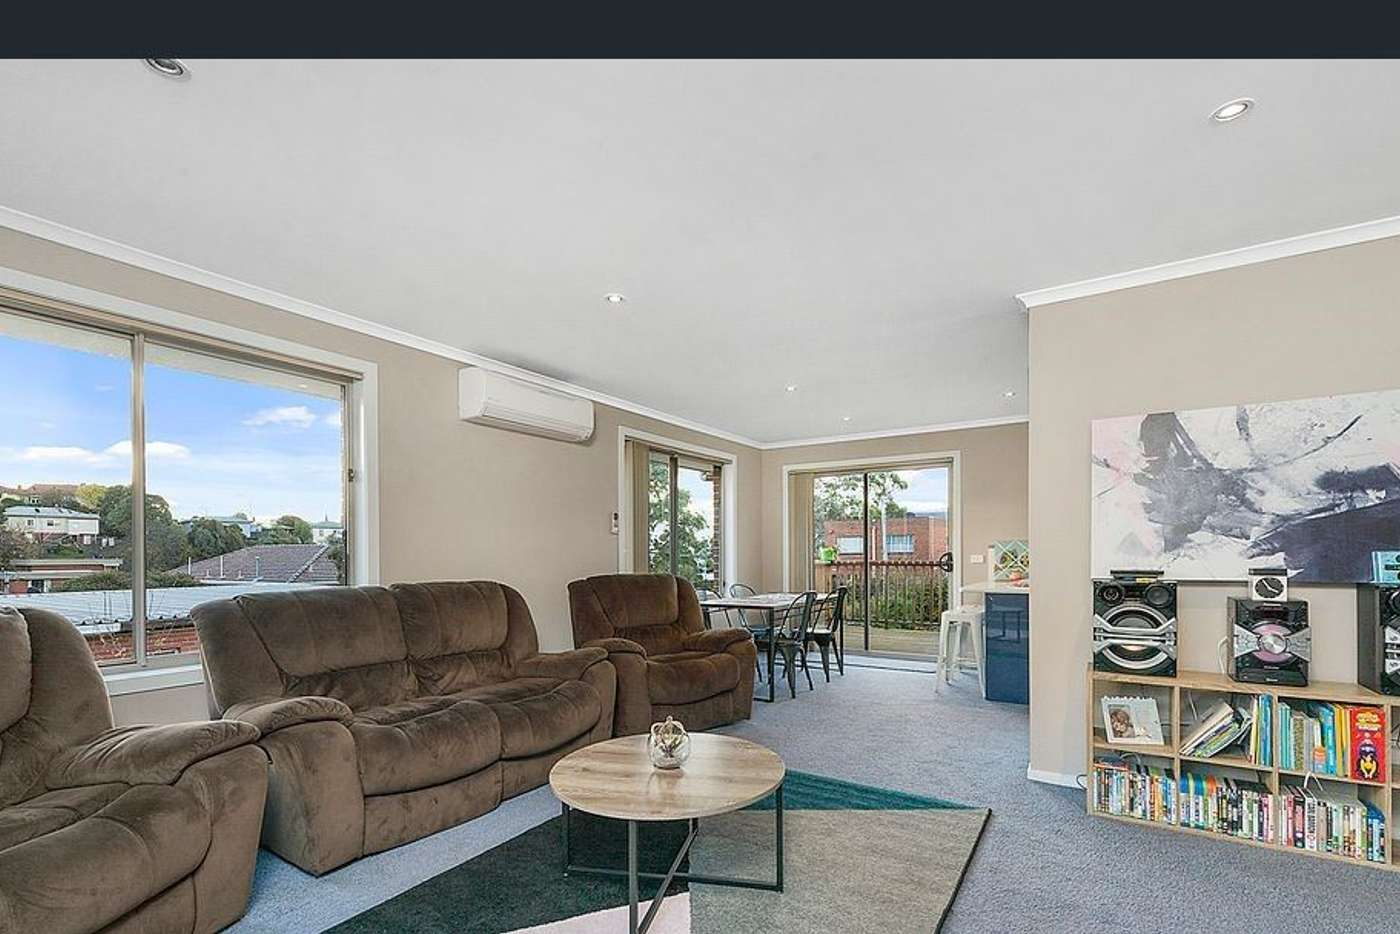 Seventh view of Homely villa listing, 2/4 Fifth Avenue, West Moonah TAS 7009